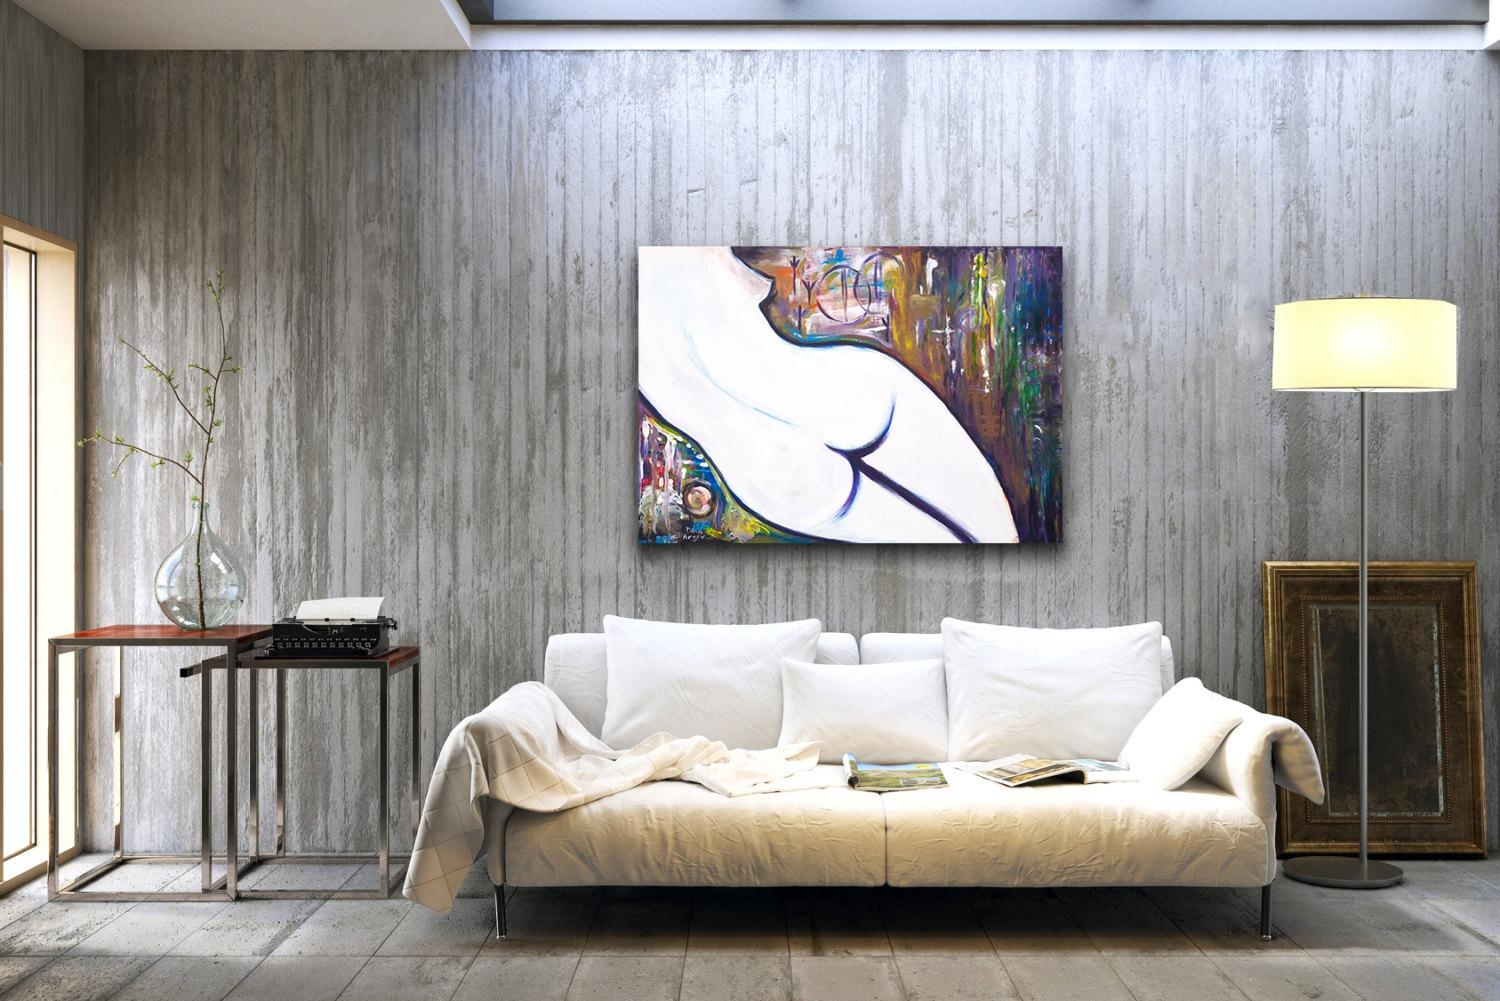 Nude Painting Abstract Female Nudity Woman Painting With Regard To Sensual Wall Art (Image 9 of 20)